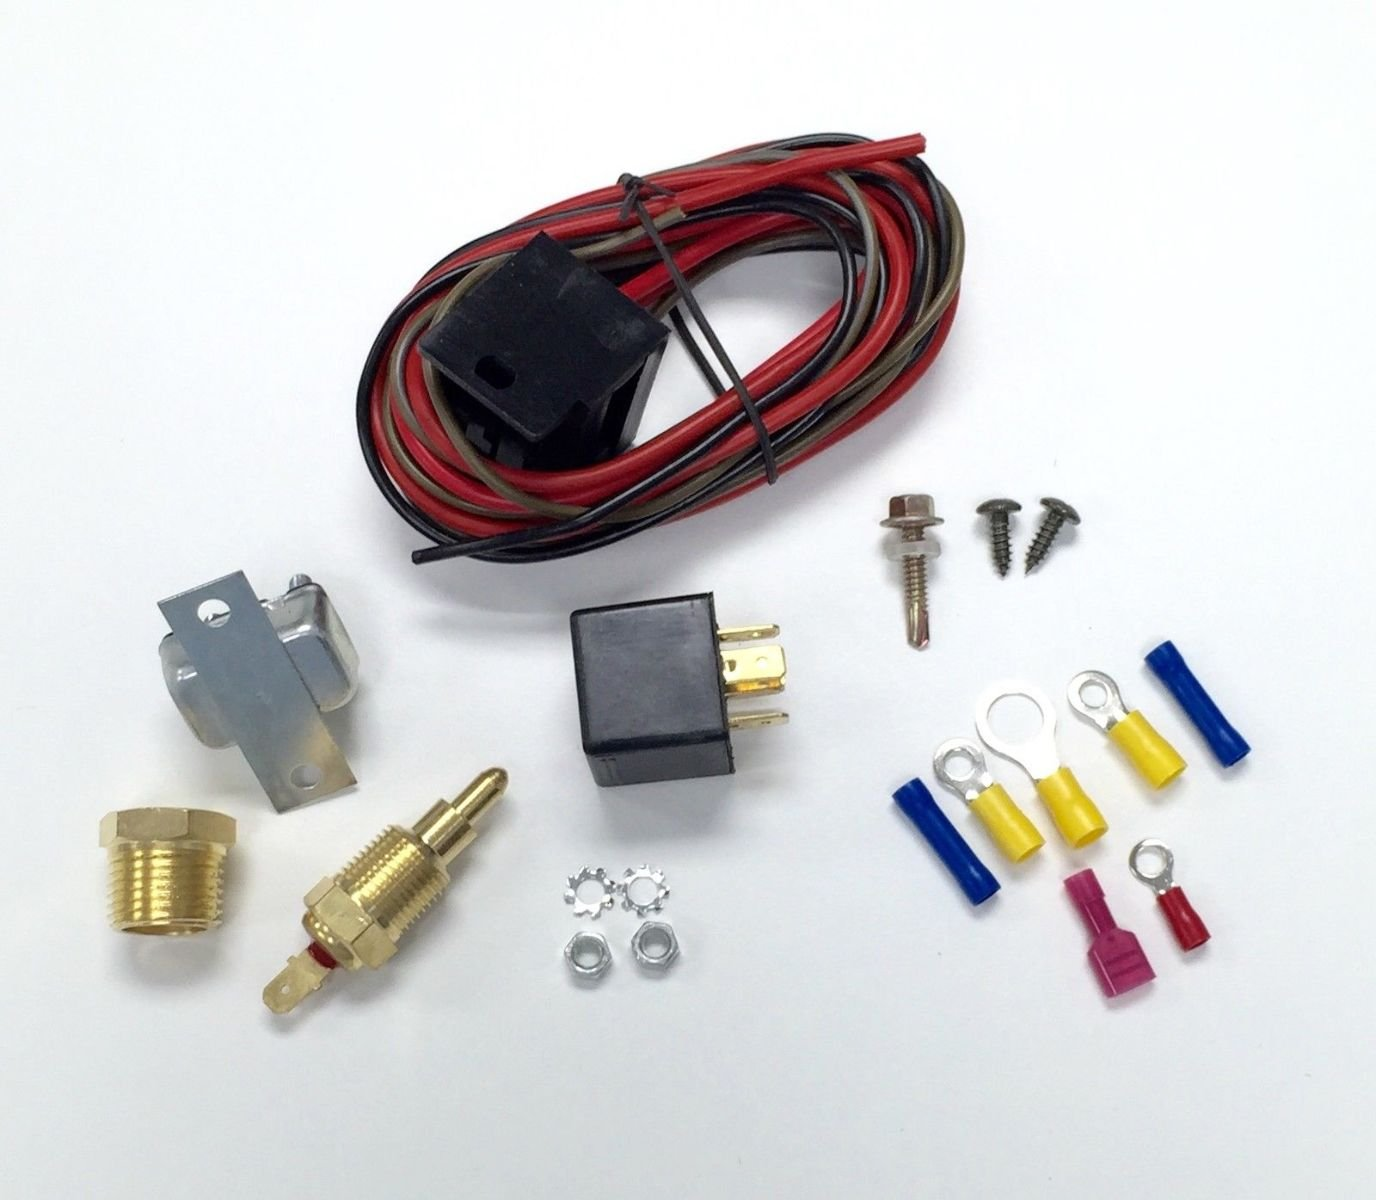 Pirate Mfg Hot Rod Electric Cooling Fan Wiring Install Flexalite Diagram Kit 200 185 Thermostat 50 Amp Relay Automotive